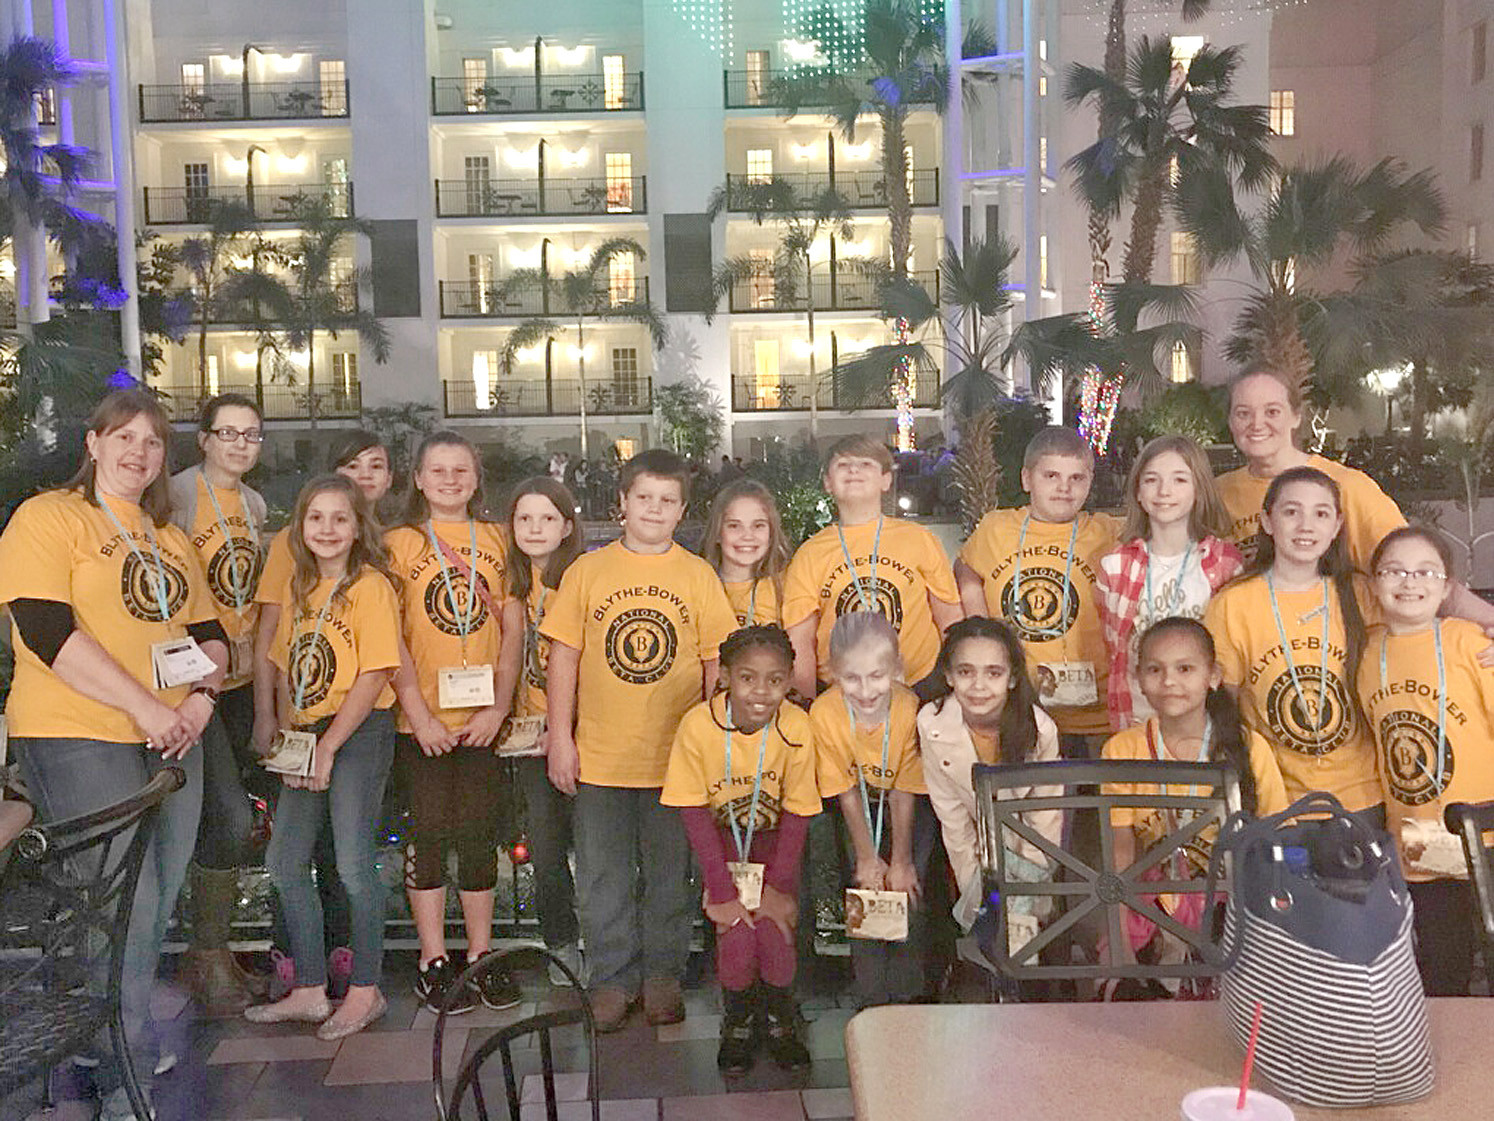 The Blythe-Bower Elementary Beta Club attended the State Convention recently. Members won third place overall in math, third place overall in science and first place in the scrapbook competition.